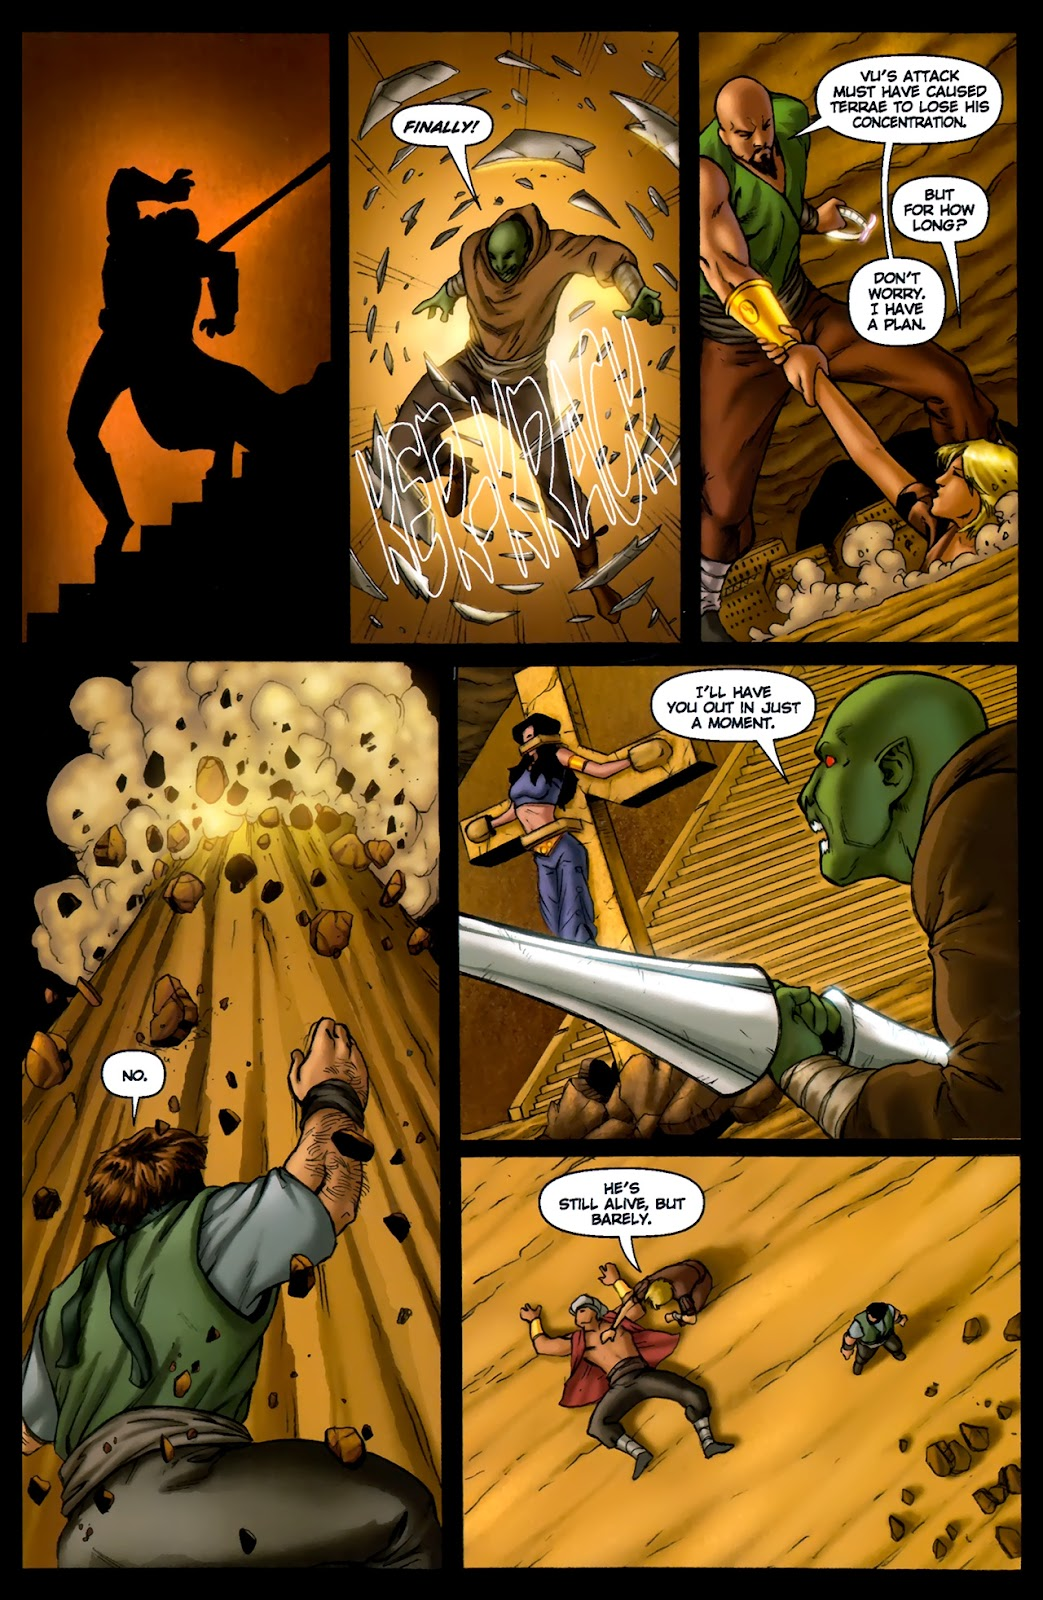 1001 Arabian Nights: The Adventures of Sinbad Issue #13 Page 14